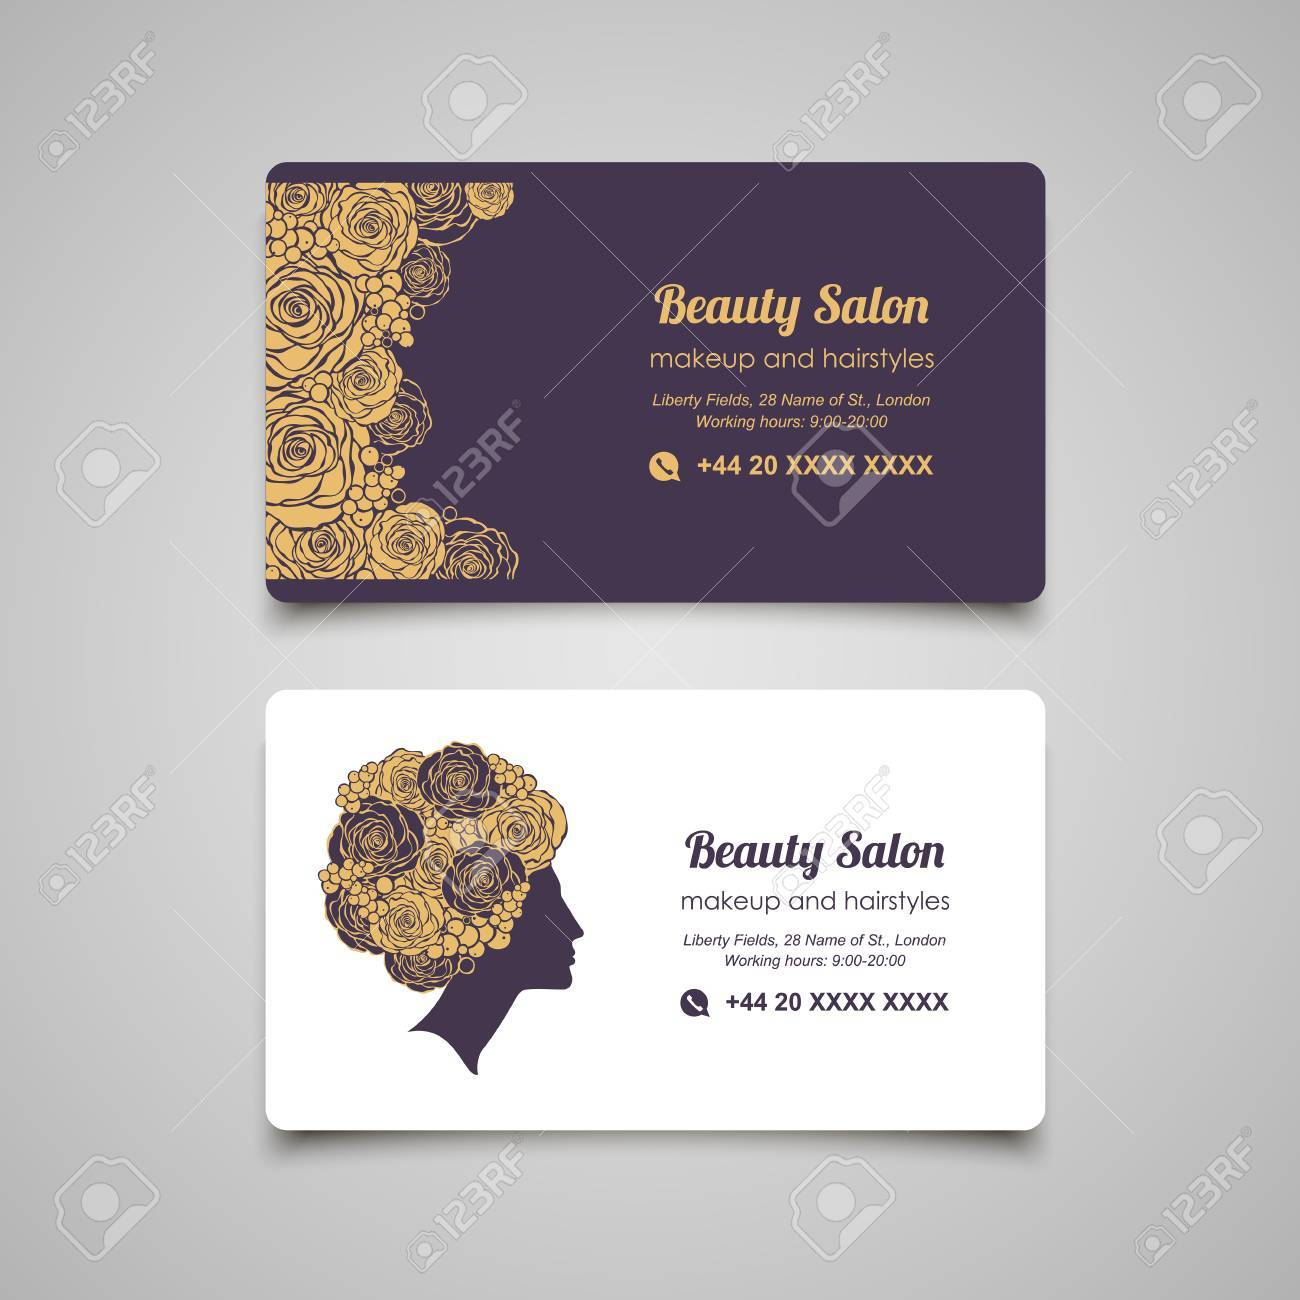 Beauty salon luxury business card design template with beautiful banco de imagens beauty salon luxury business card design template with beautiful womans profile reheart Gallery